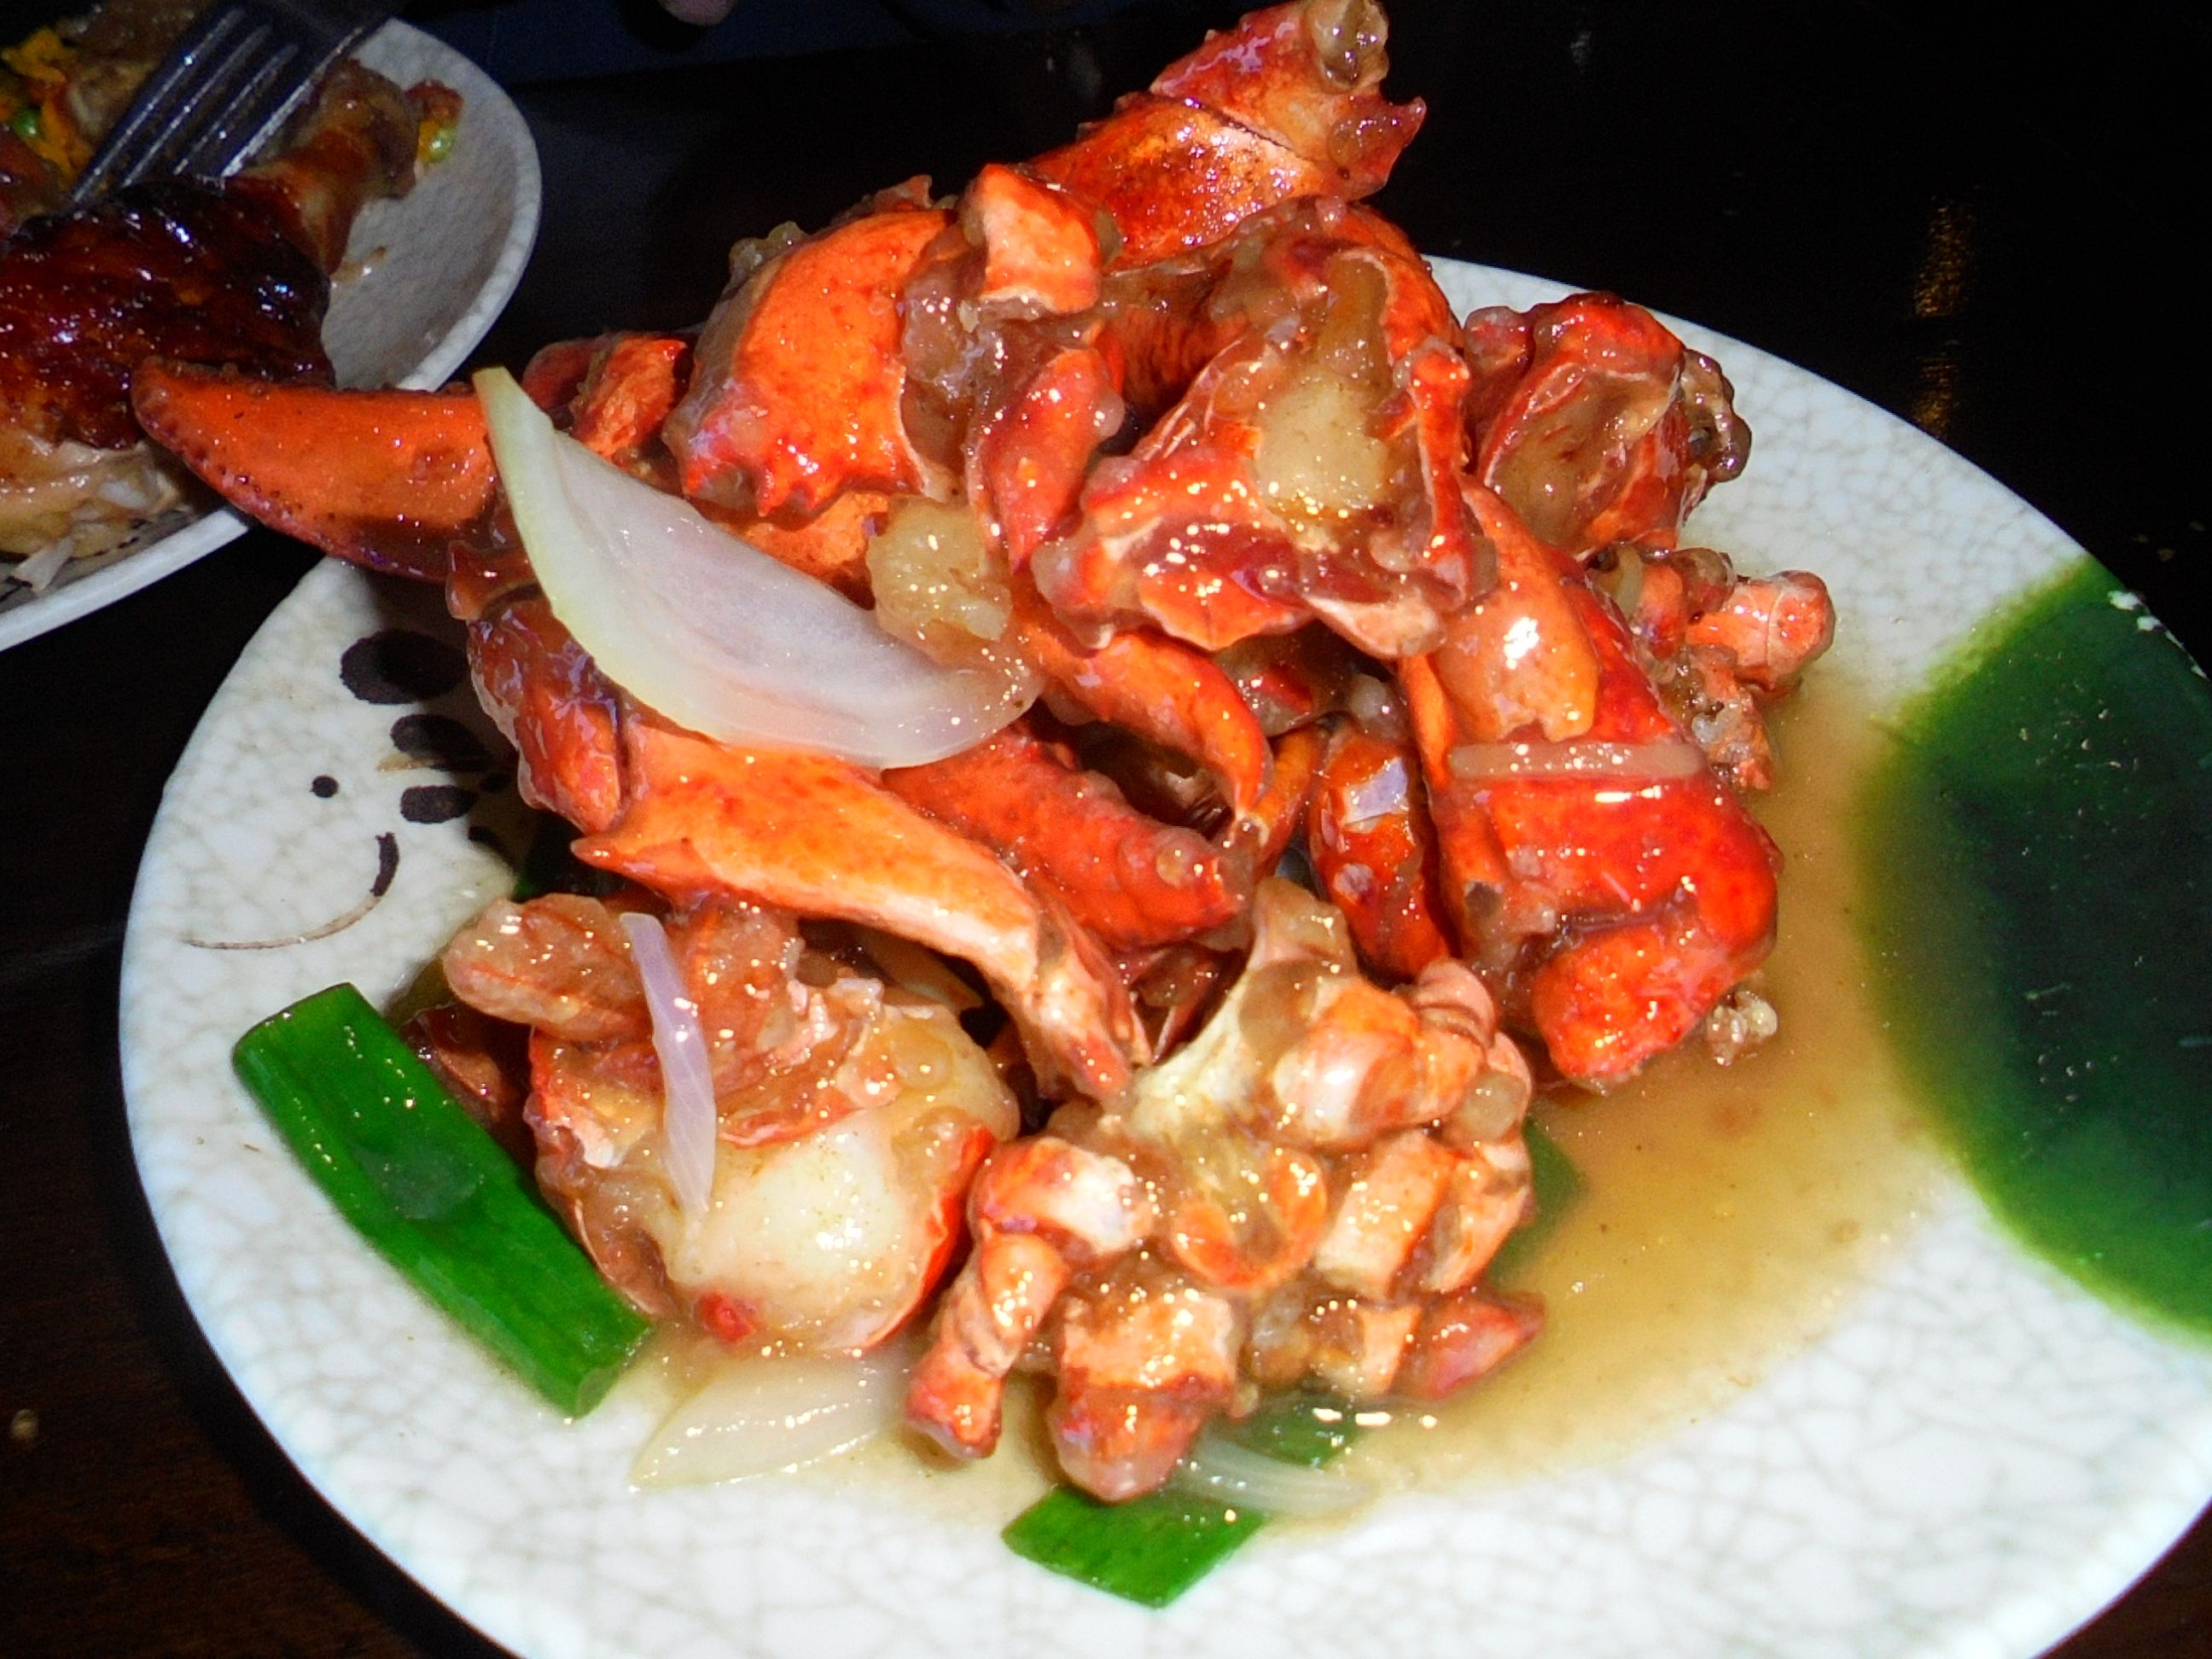 #Hibachi style #Lobster in #Ginger and #butter sauce - www.drewrynewsnetwork.com